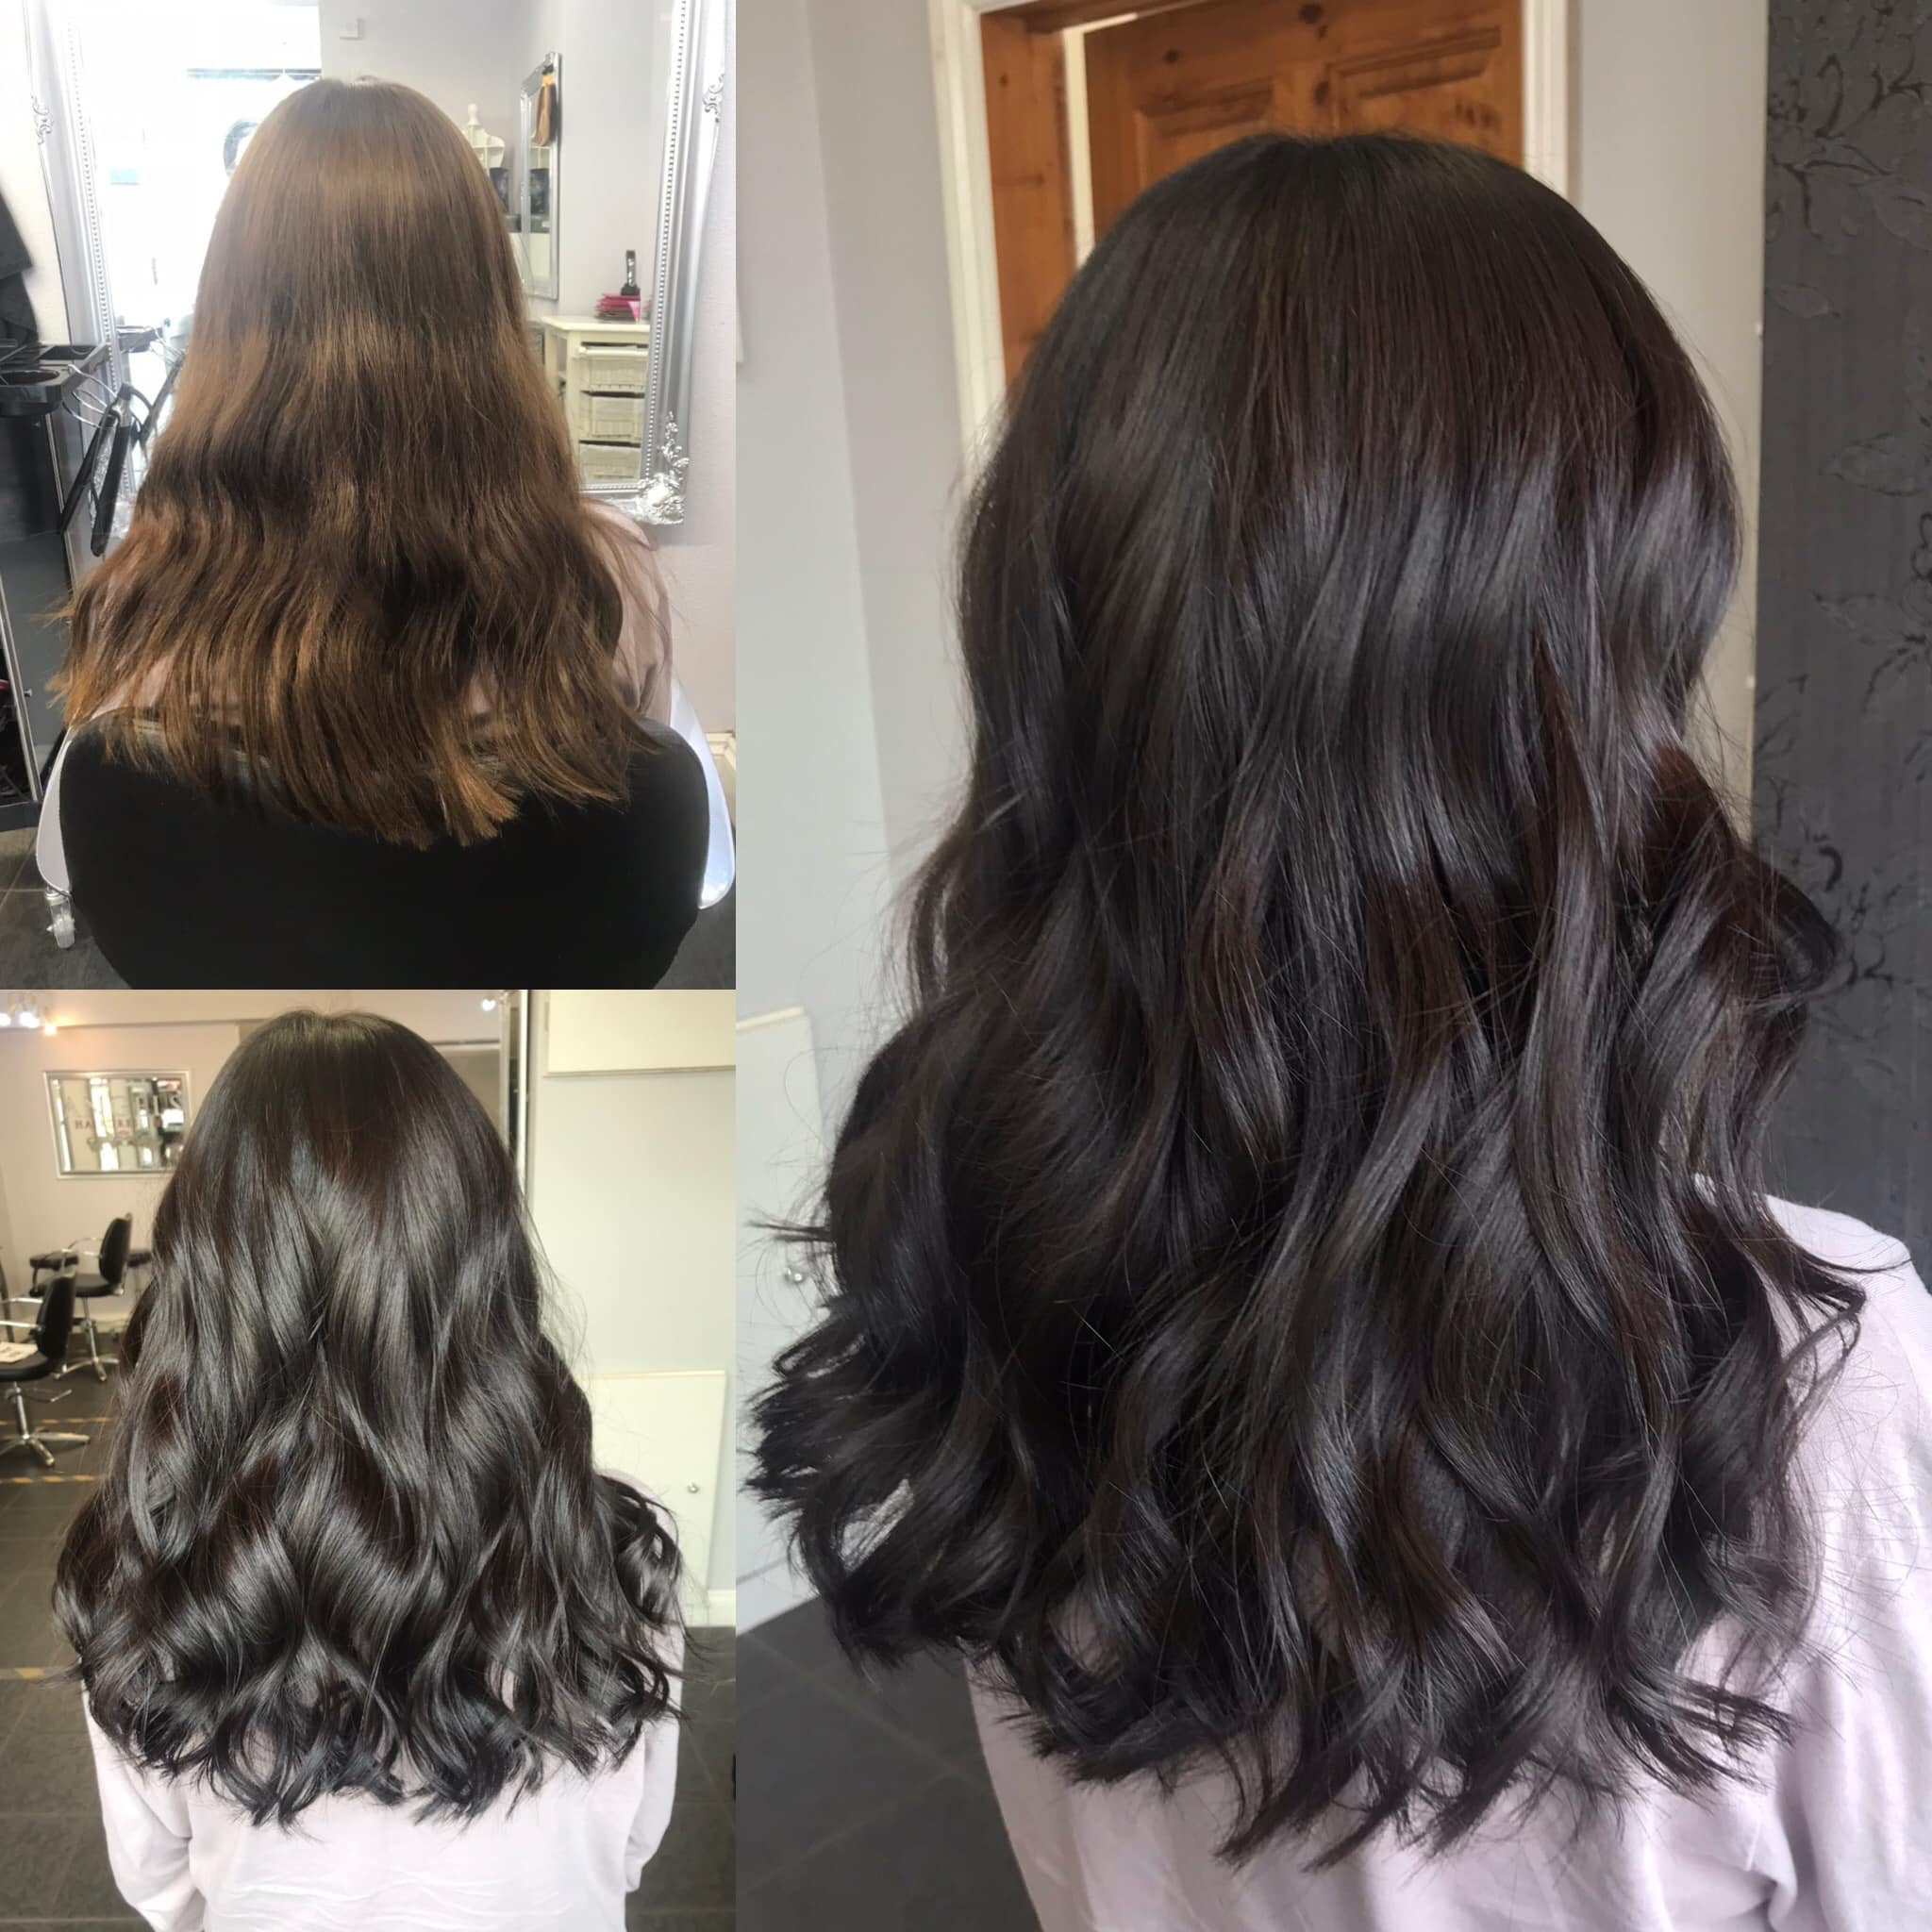 Angelslocks tape extensions